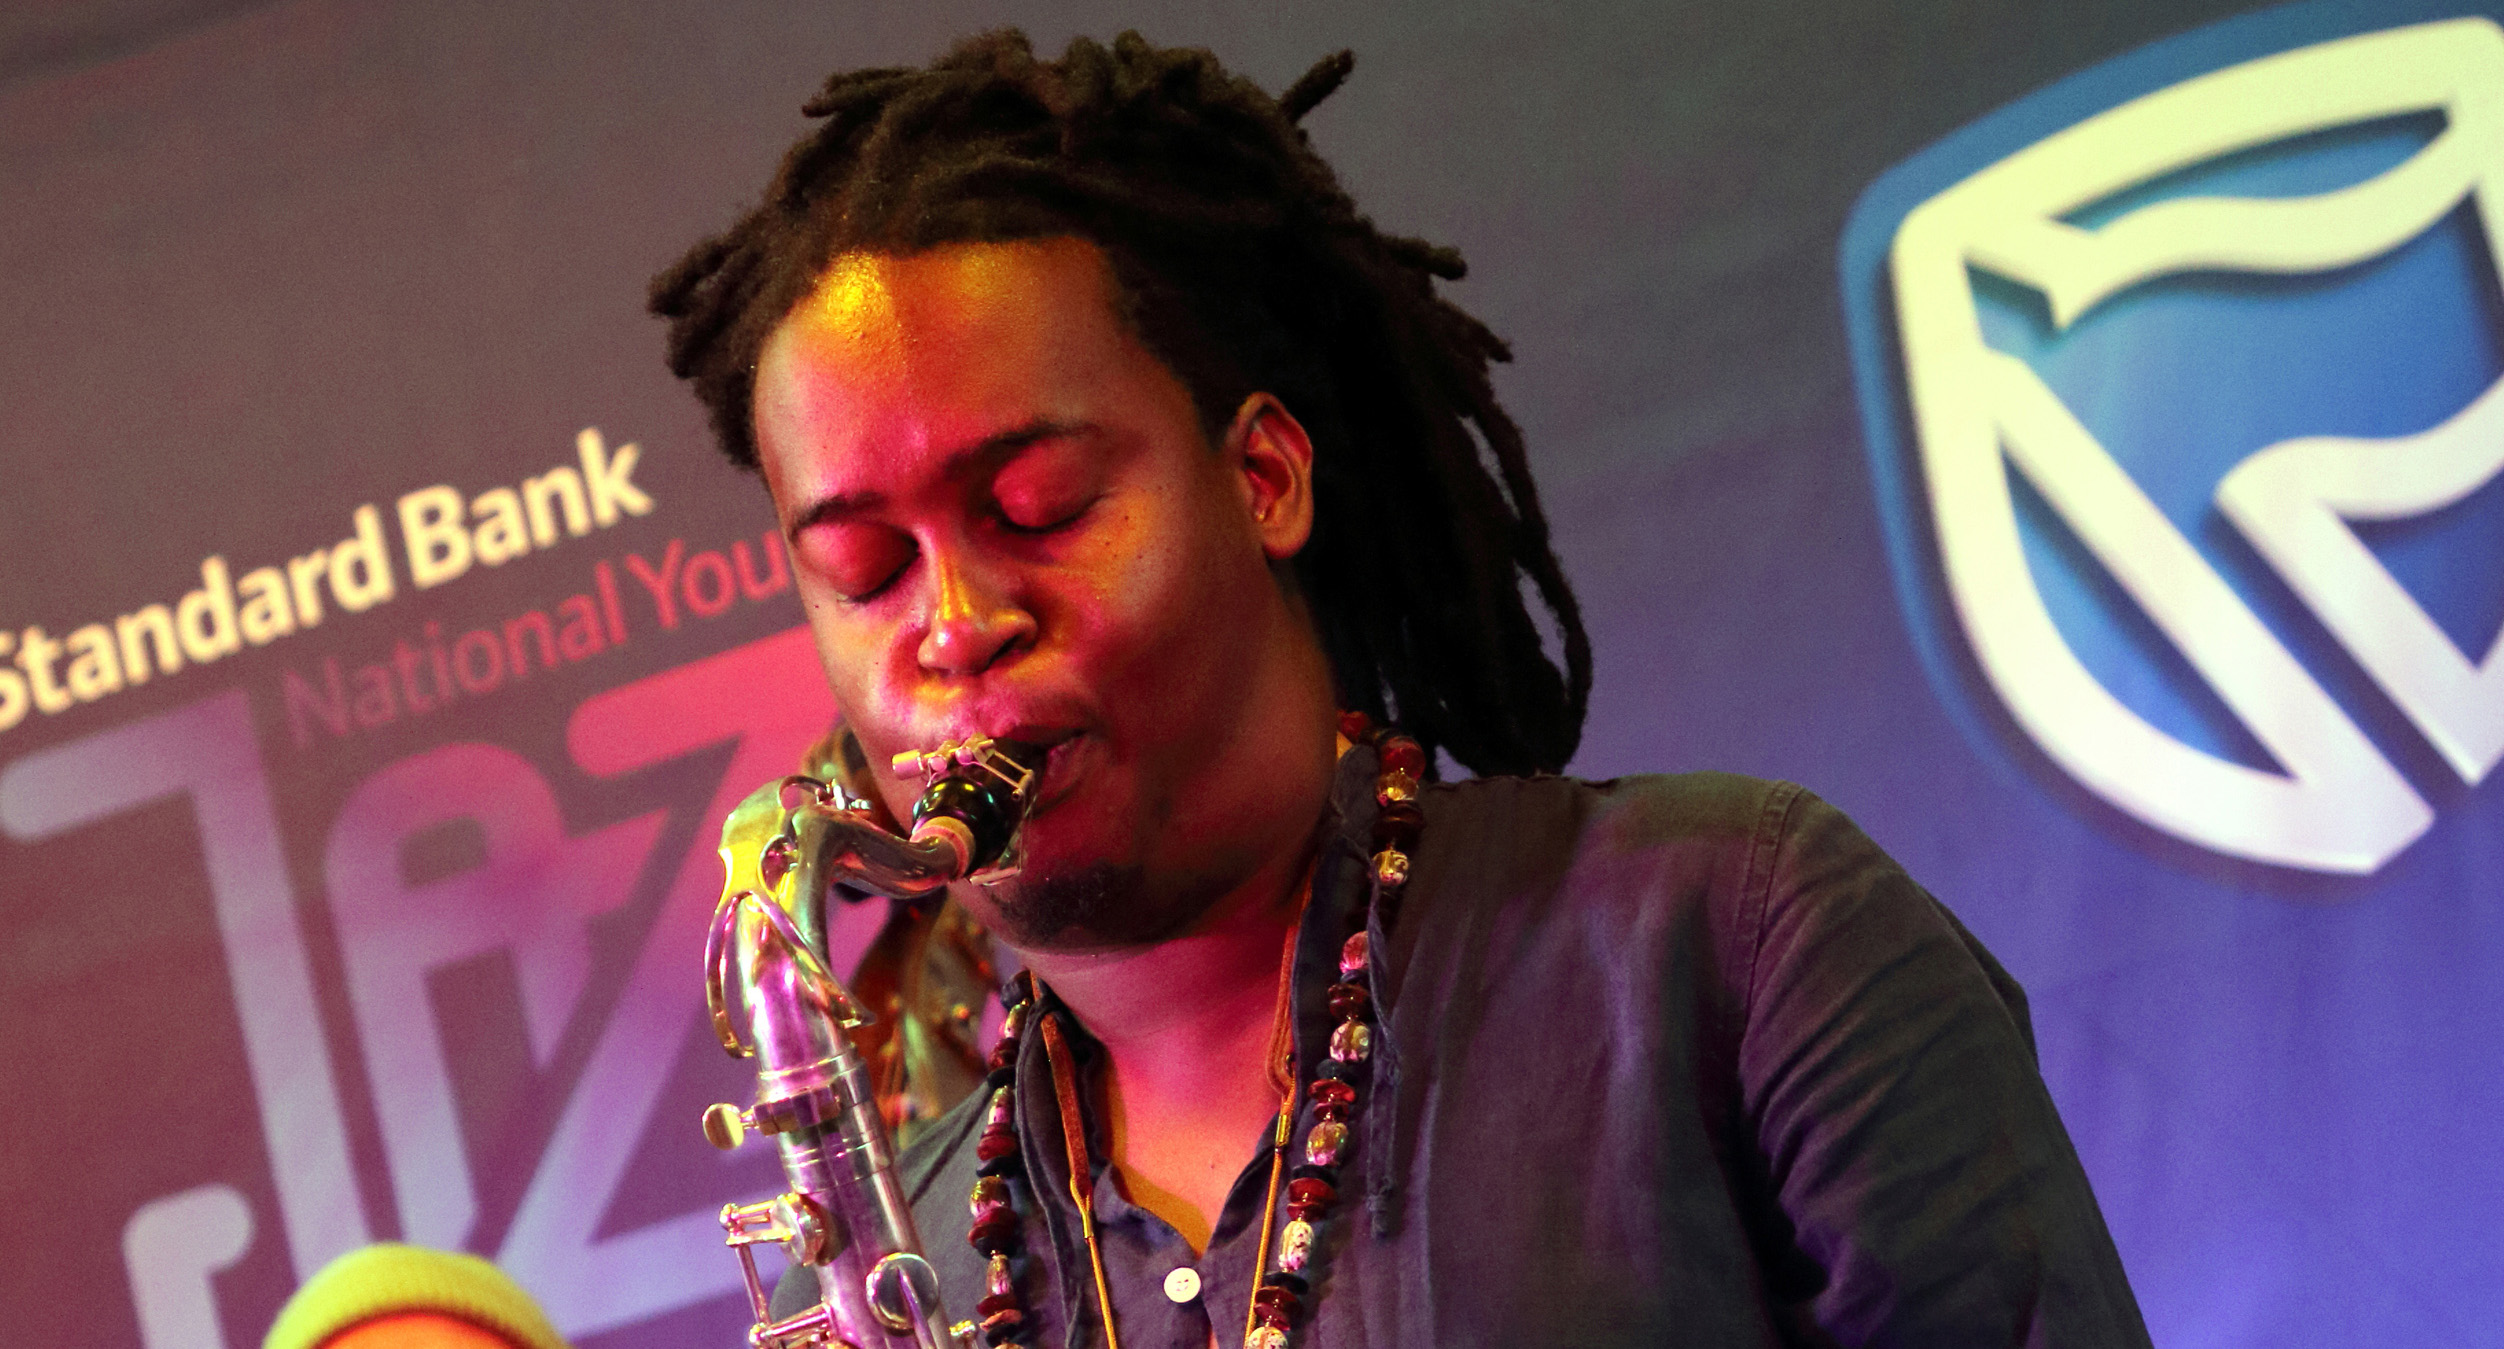 Standard Bank Jazz Festival Q&A with the Artists